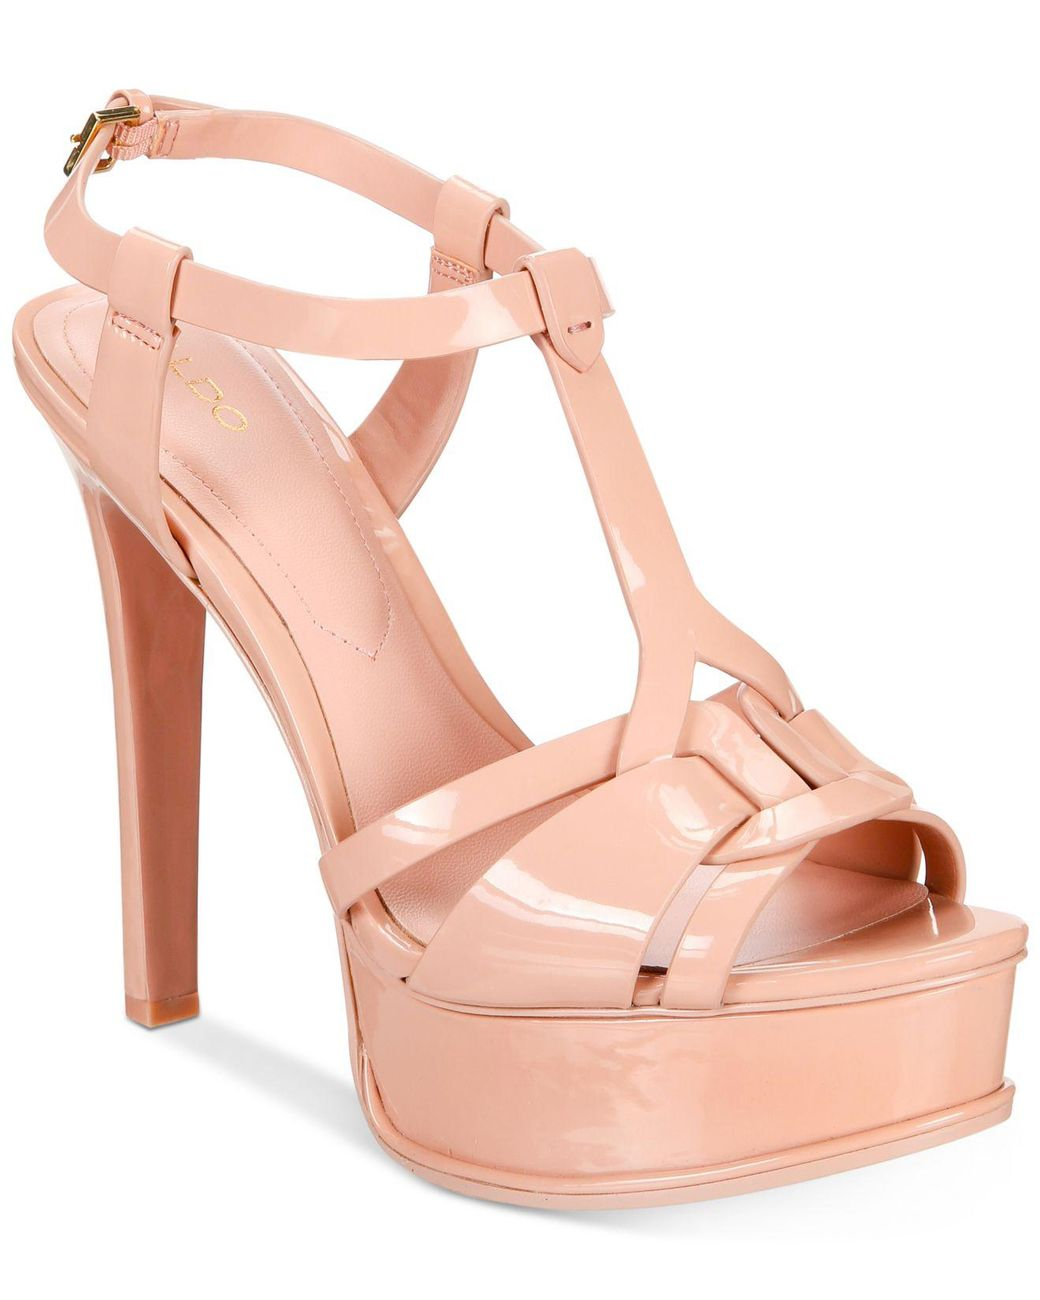 4c139b3dbb4 Lyst - ALDO Chelly Platform Dress Sandals in Pink - Save 52%